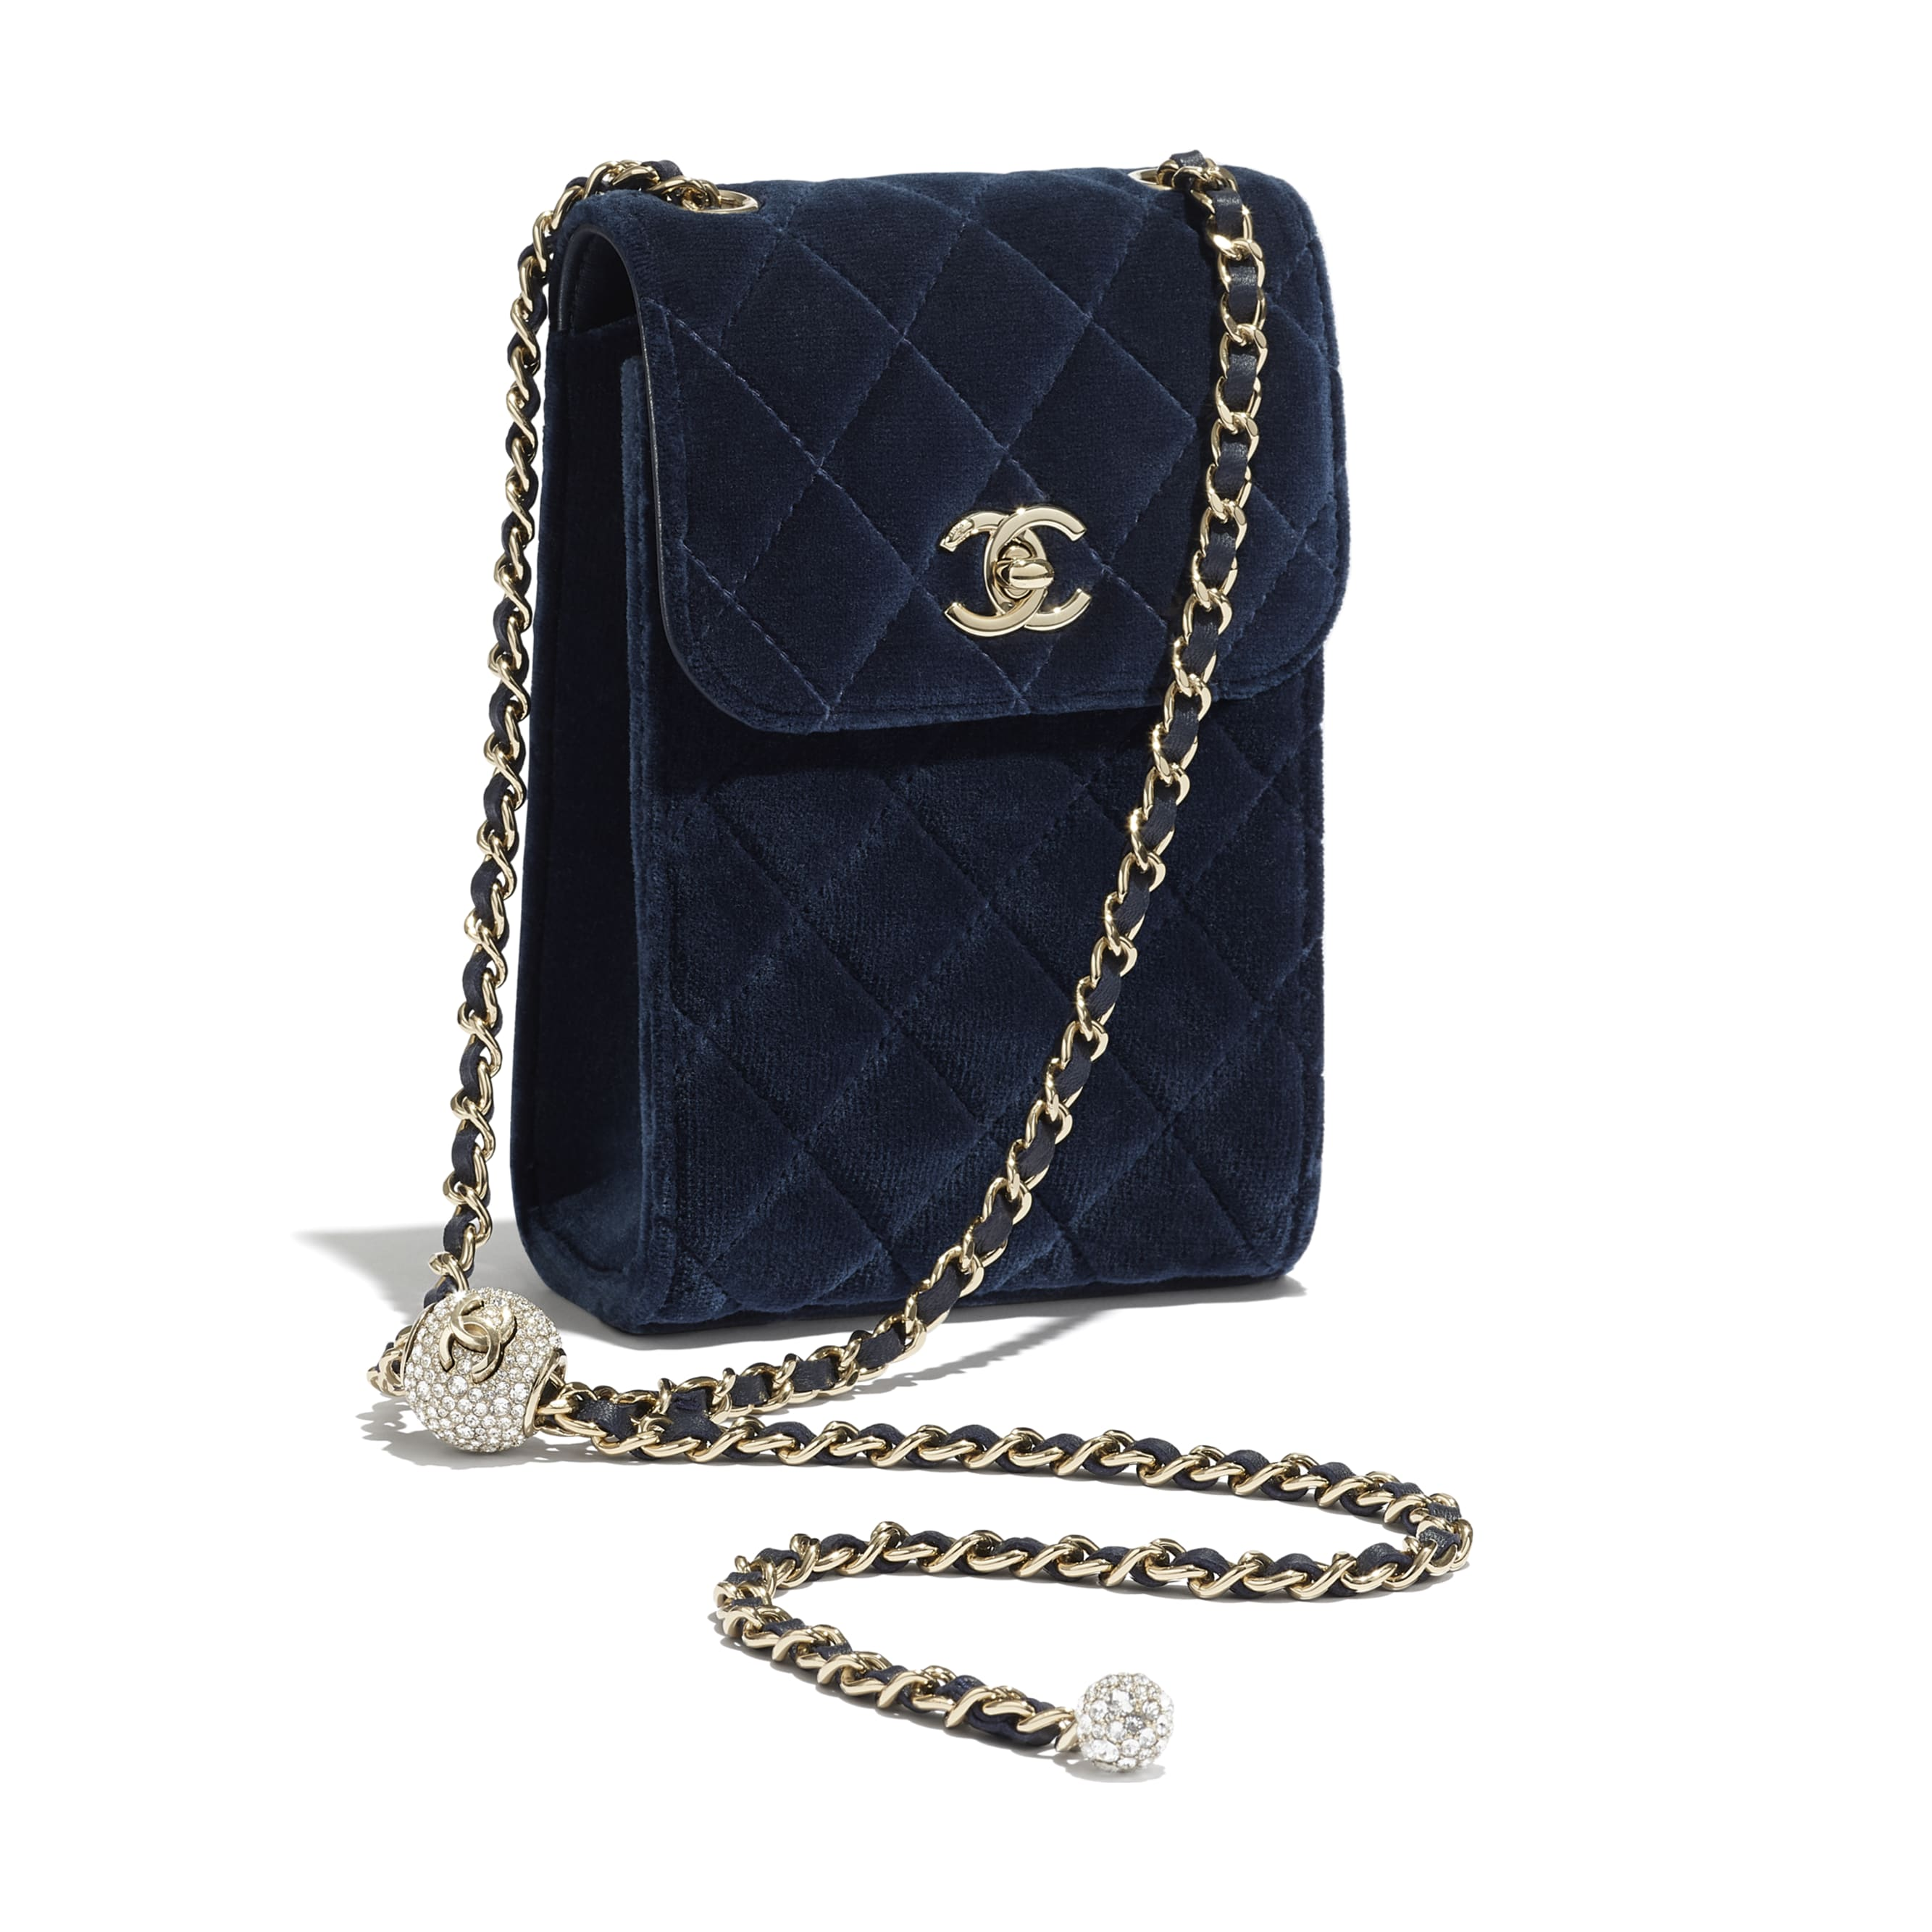 Phone Holder with Chain - Navy Blue - Velvet, Strass & Gold-Tone Metal - CHANEL - Other view - see standard sized version